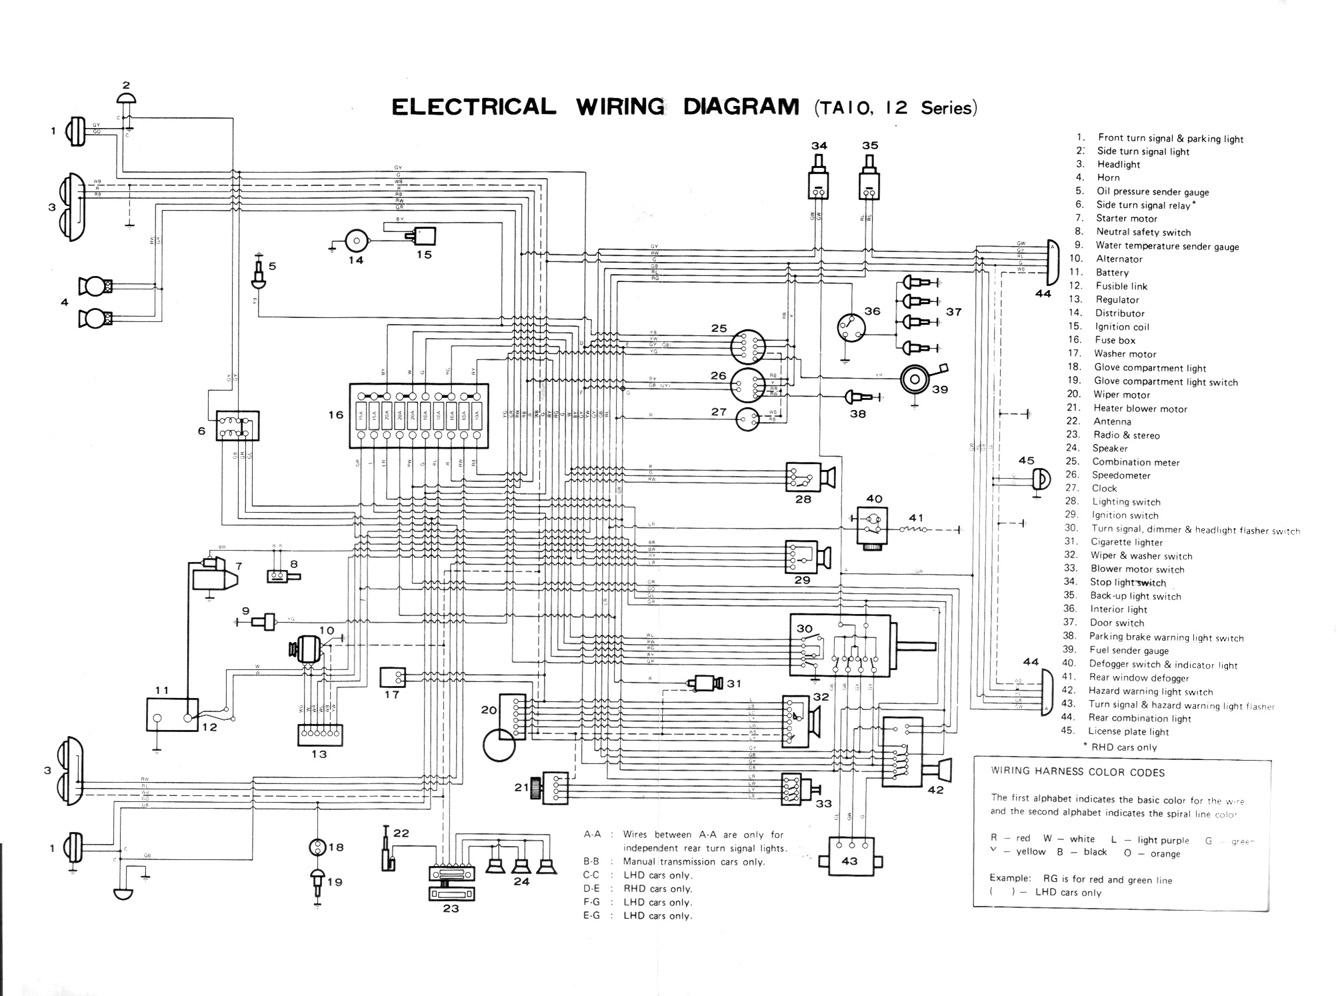 1998 mitsubishi mirage stereo wiring diagram bath fan light 2002 hyundai accent gs engine